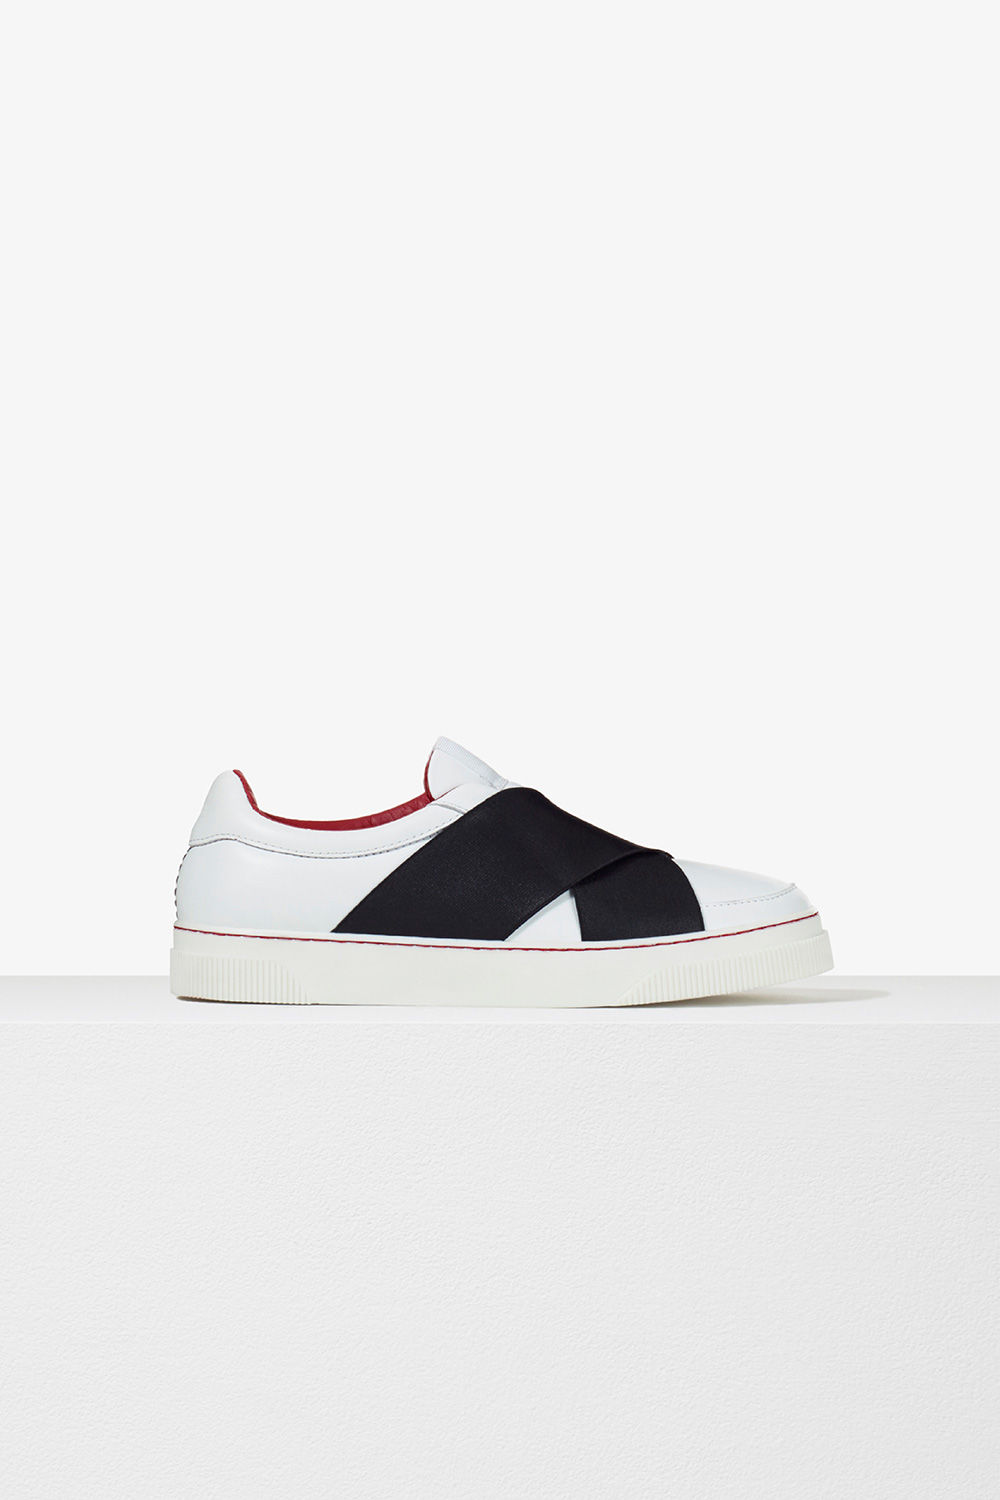 proenza schouler pre spring 2017 white black white leather and elastic slip on sneaker